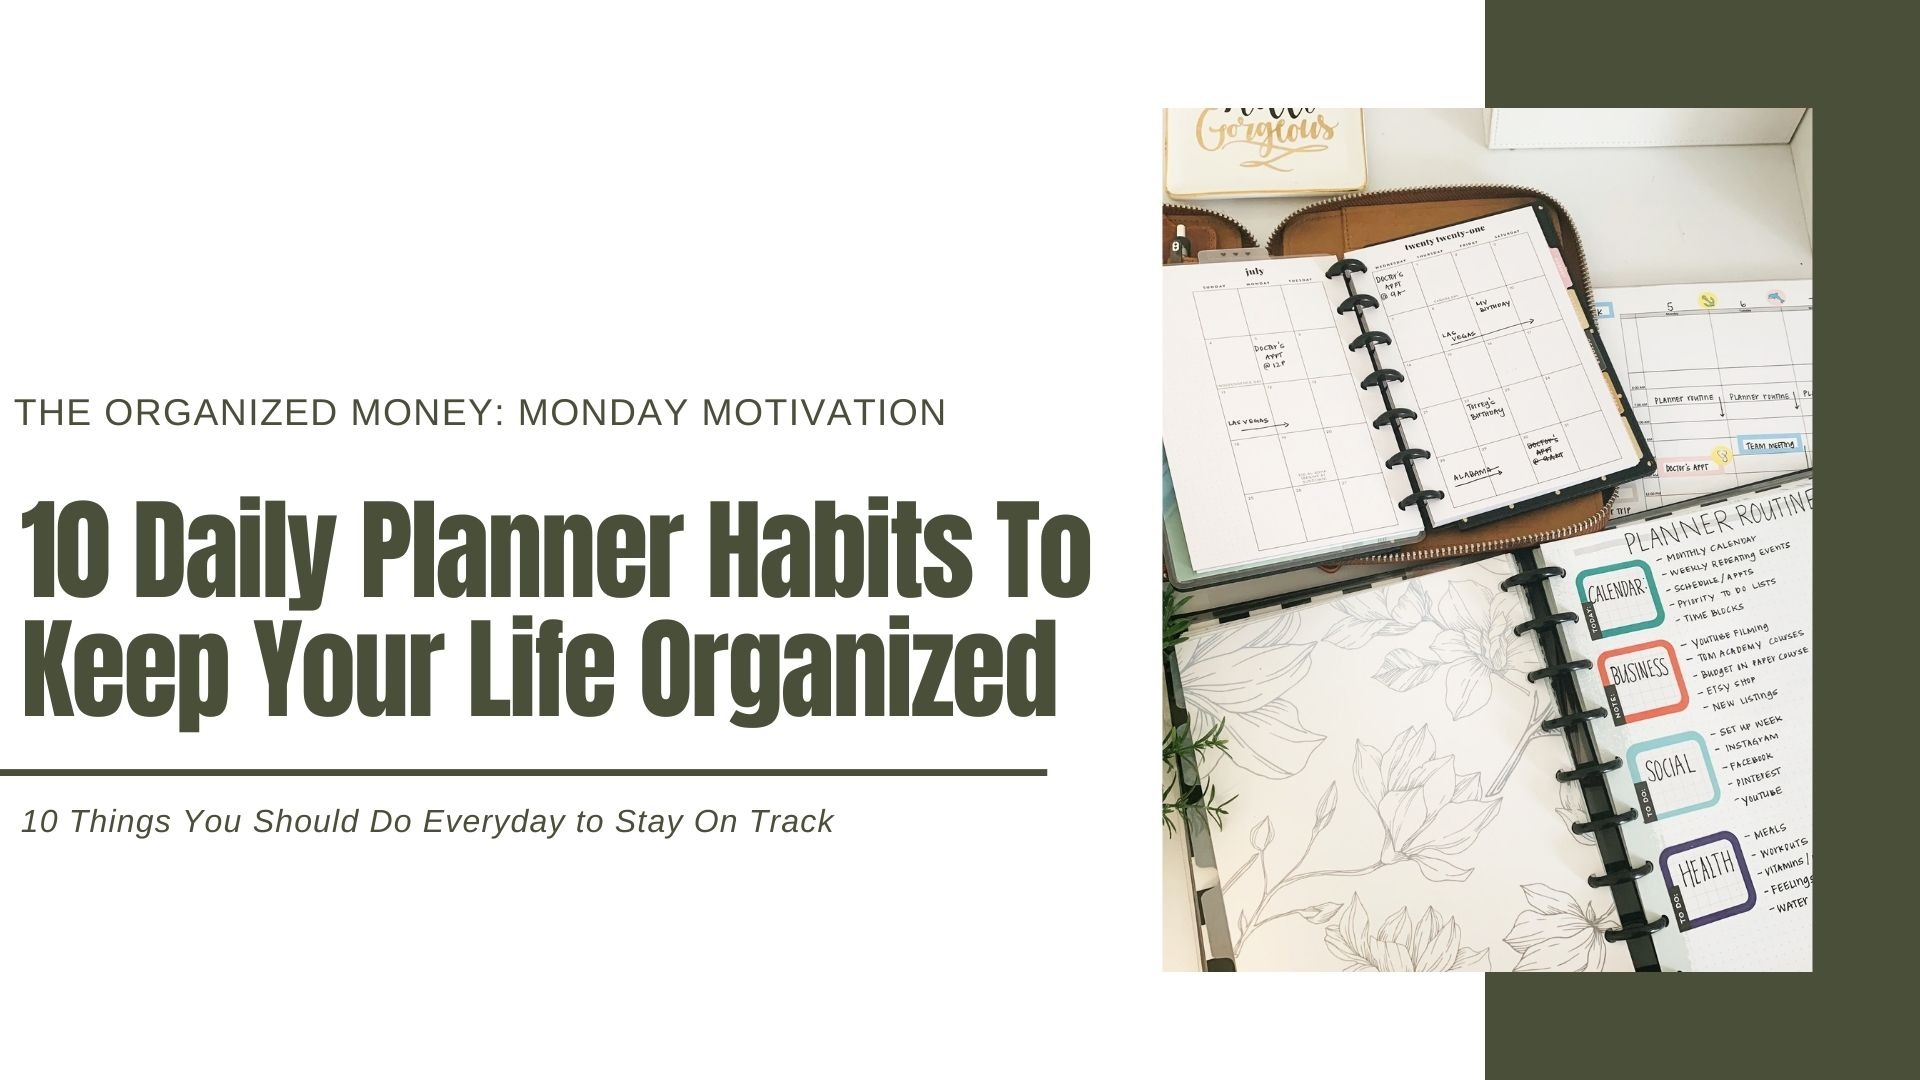 7 Daily Planner Habits To Keep Your Life Organized